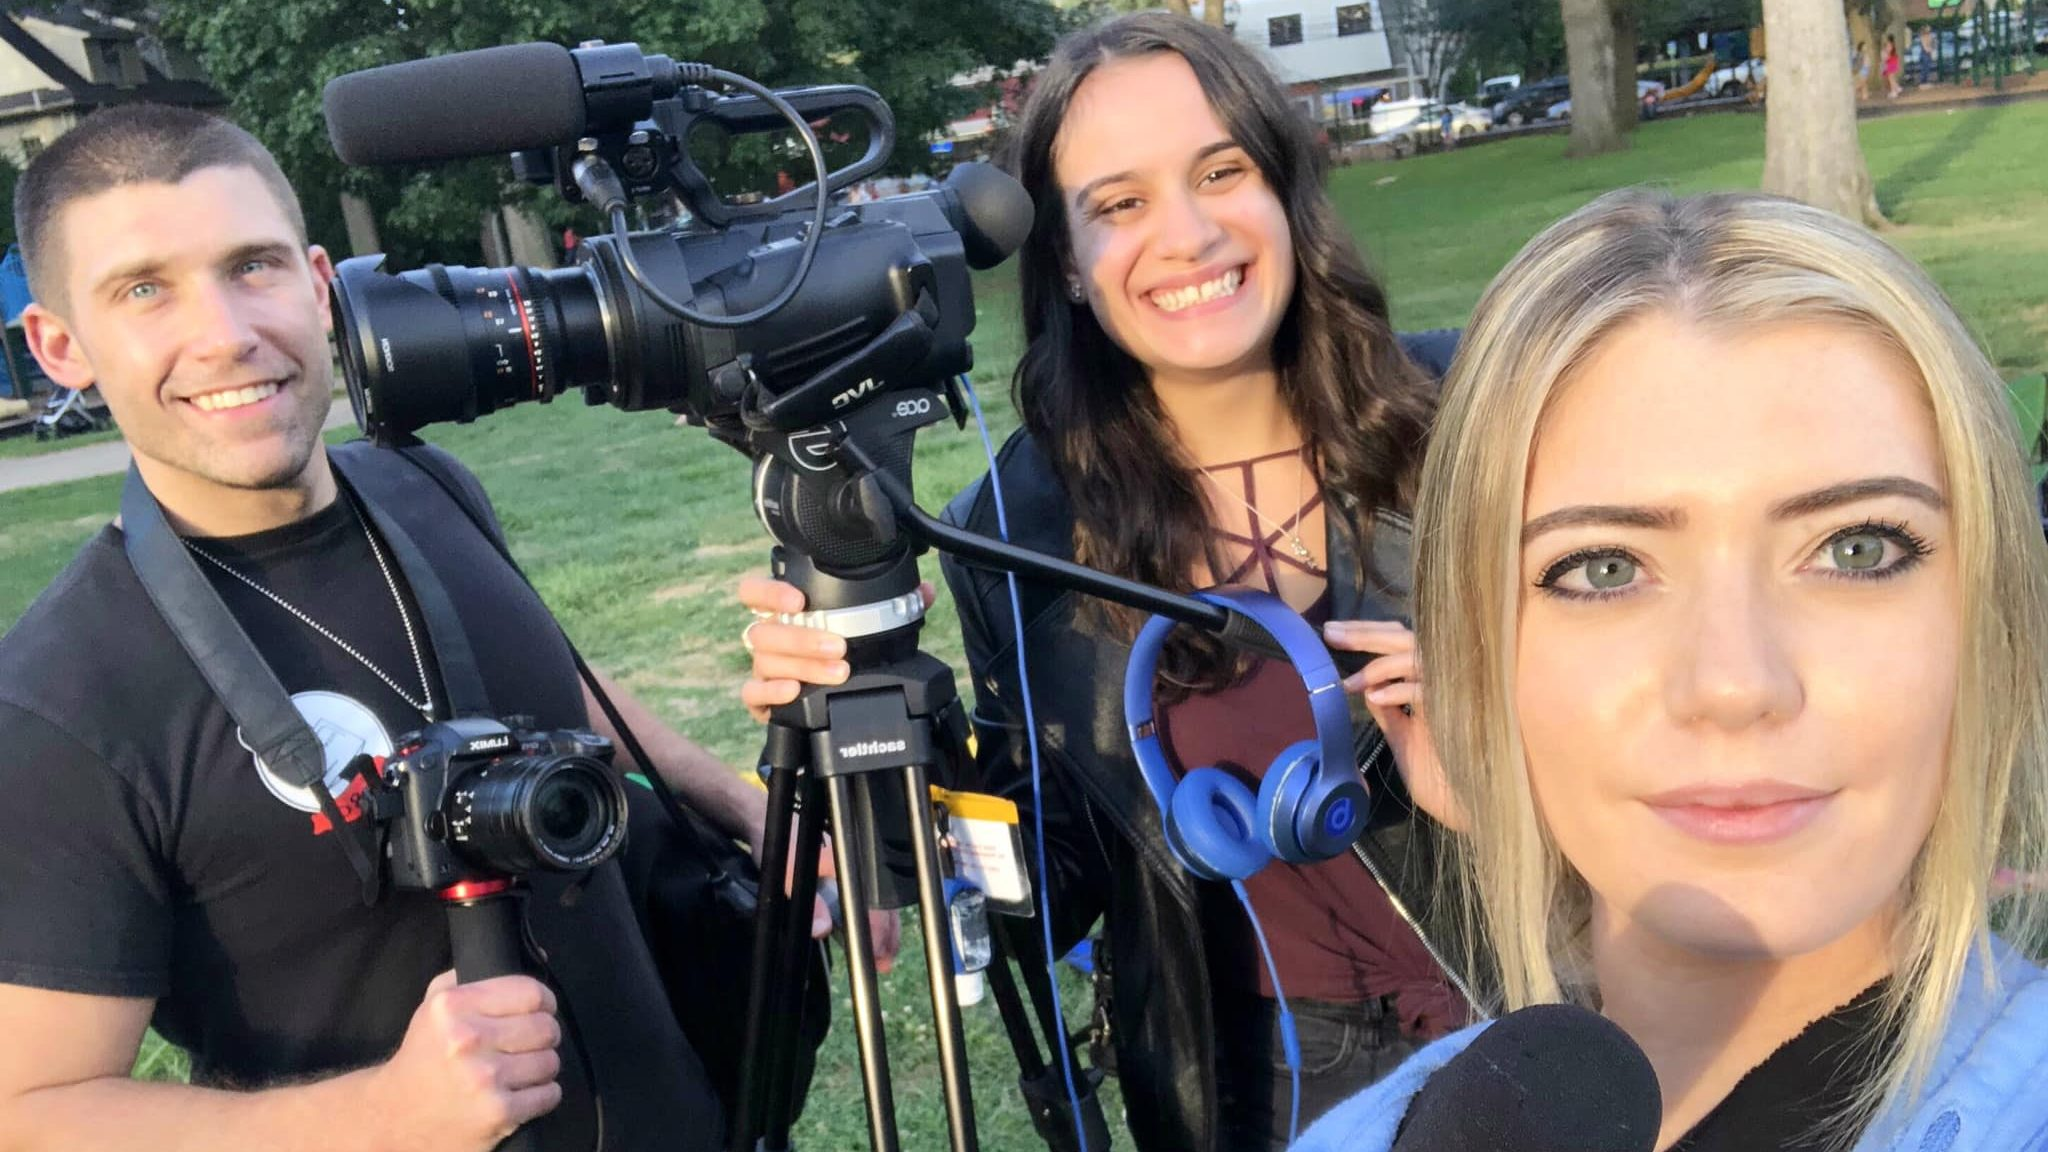 #HipNJ Chats With HTTV on Local News